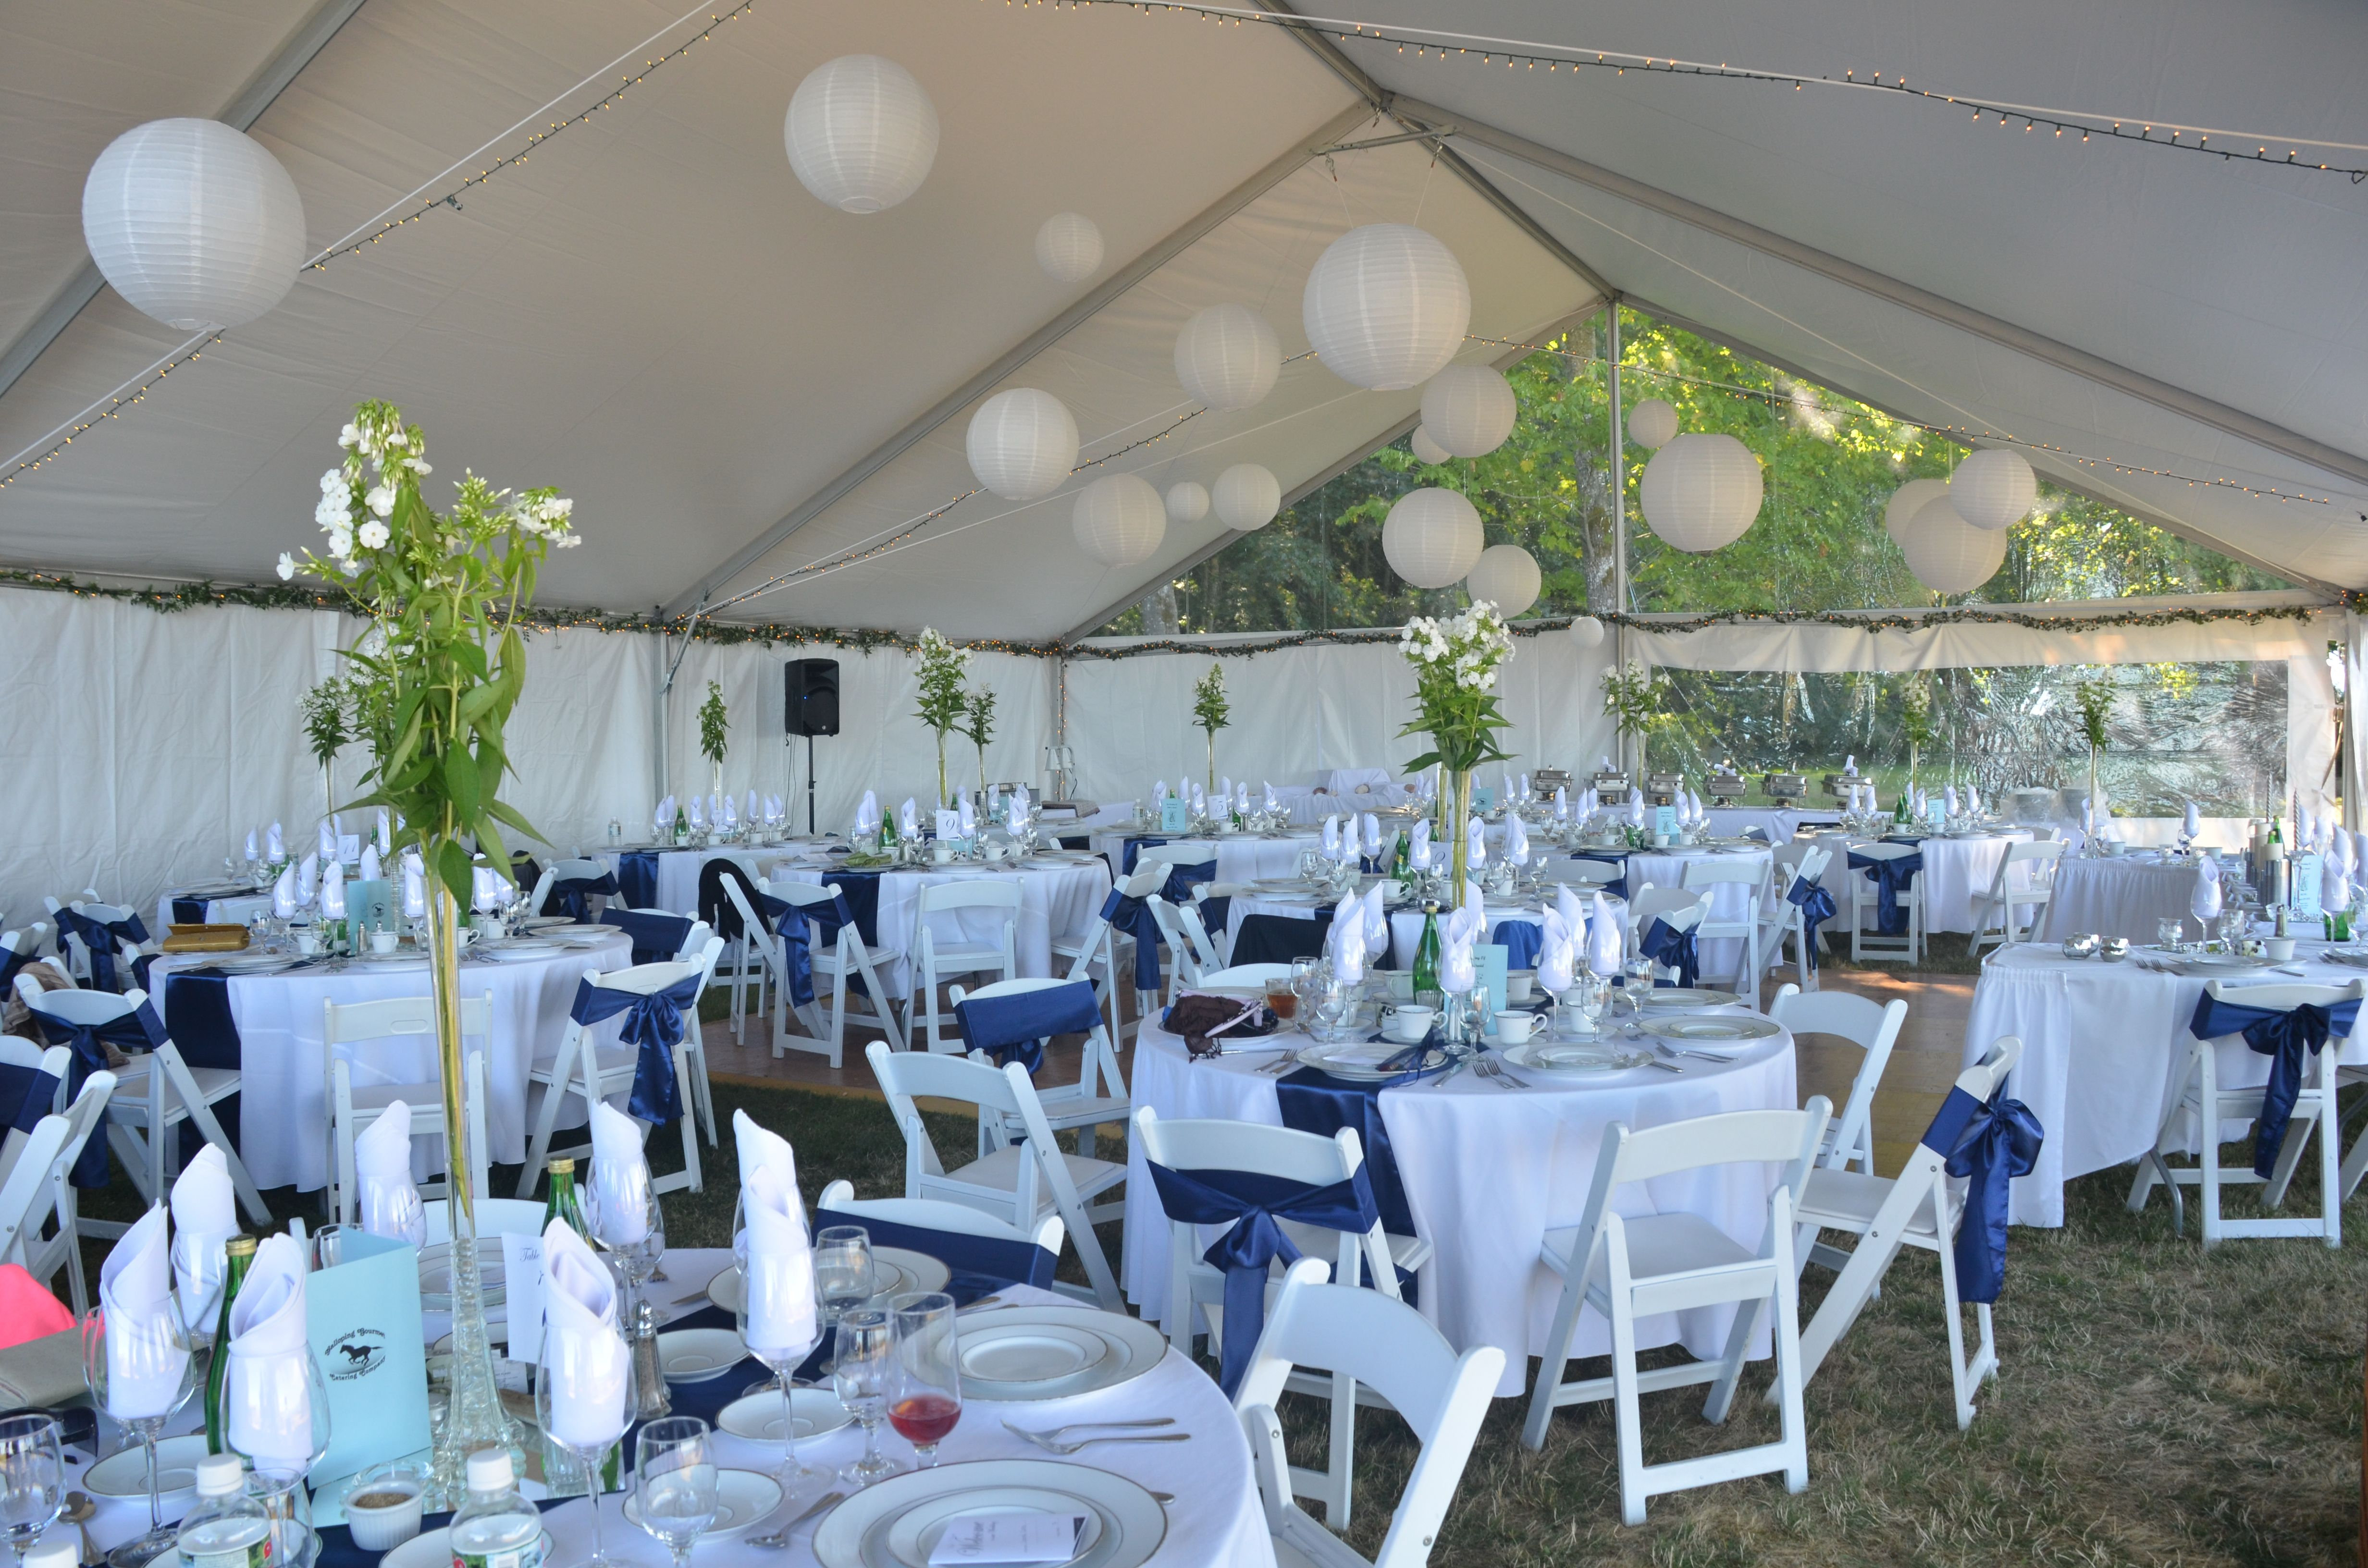 Wedding~Inside the gable end tent